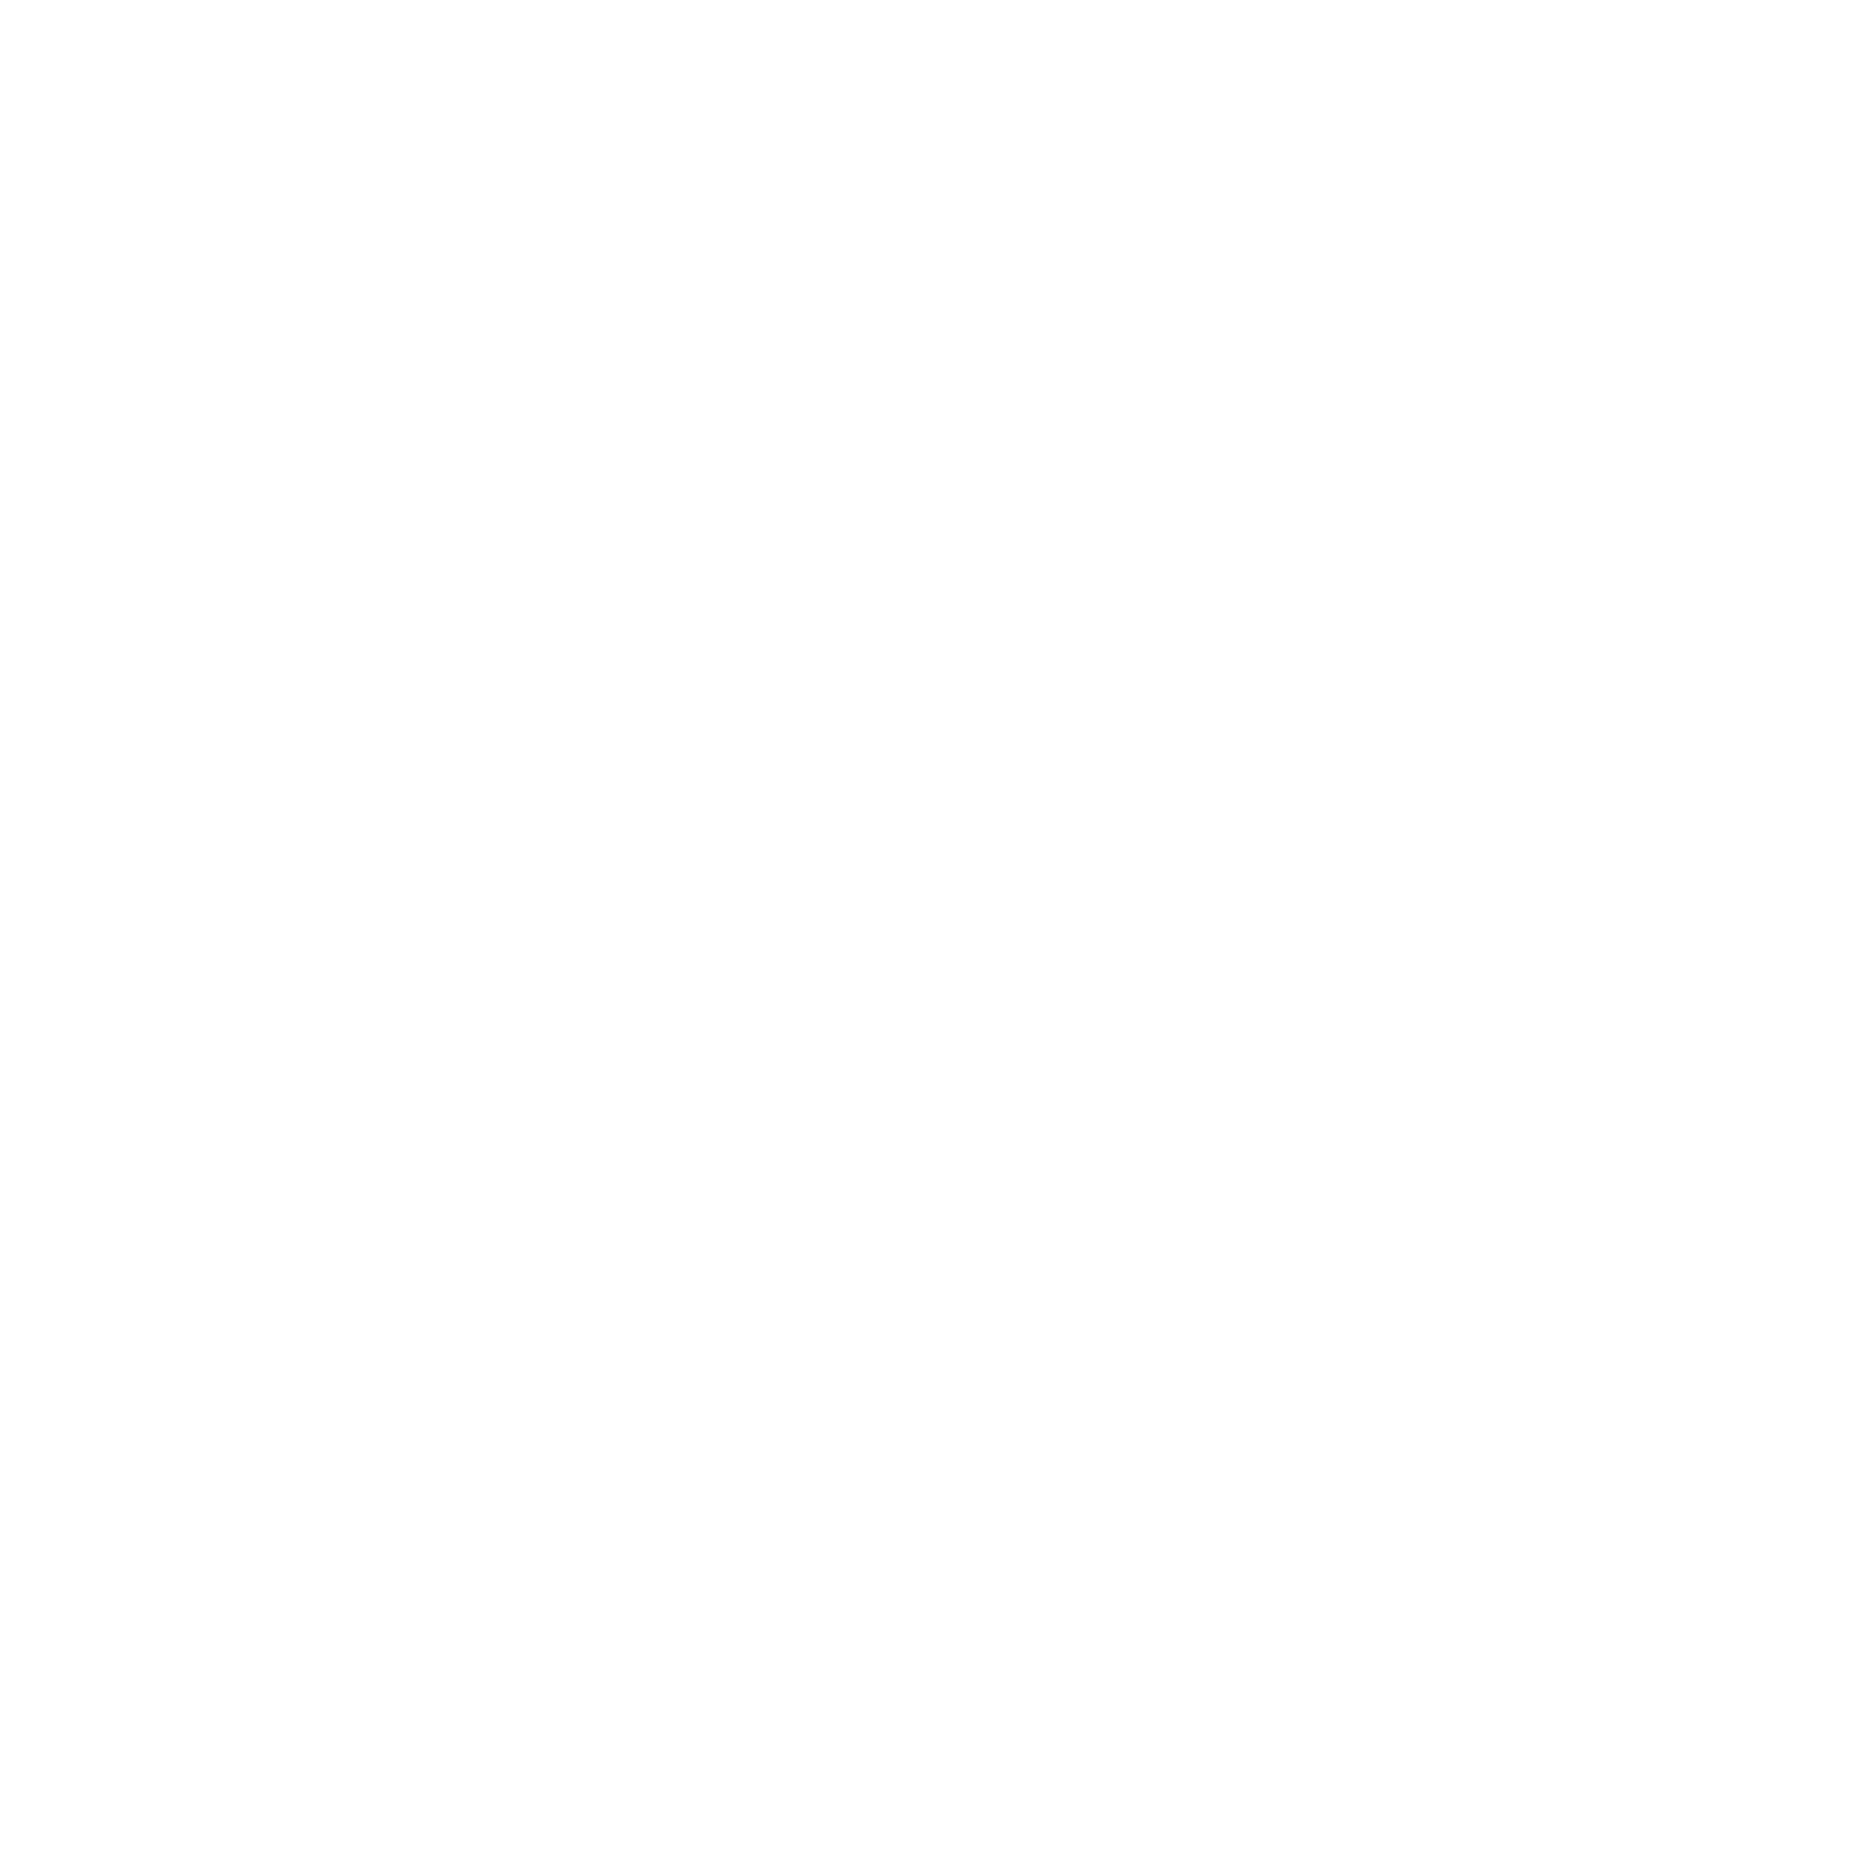 Design For Online